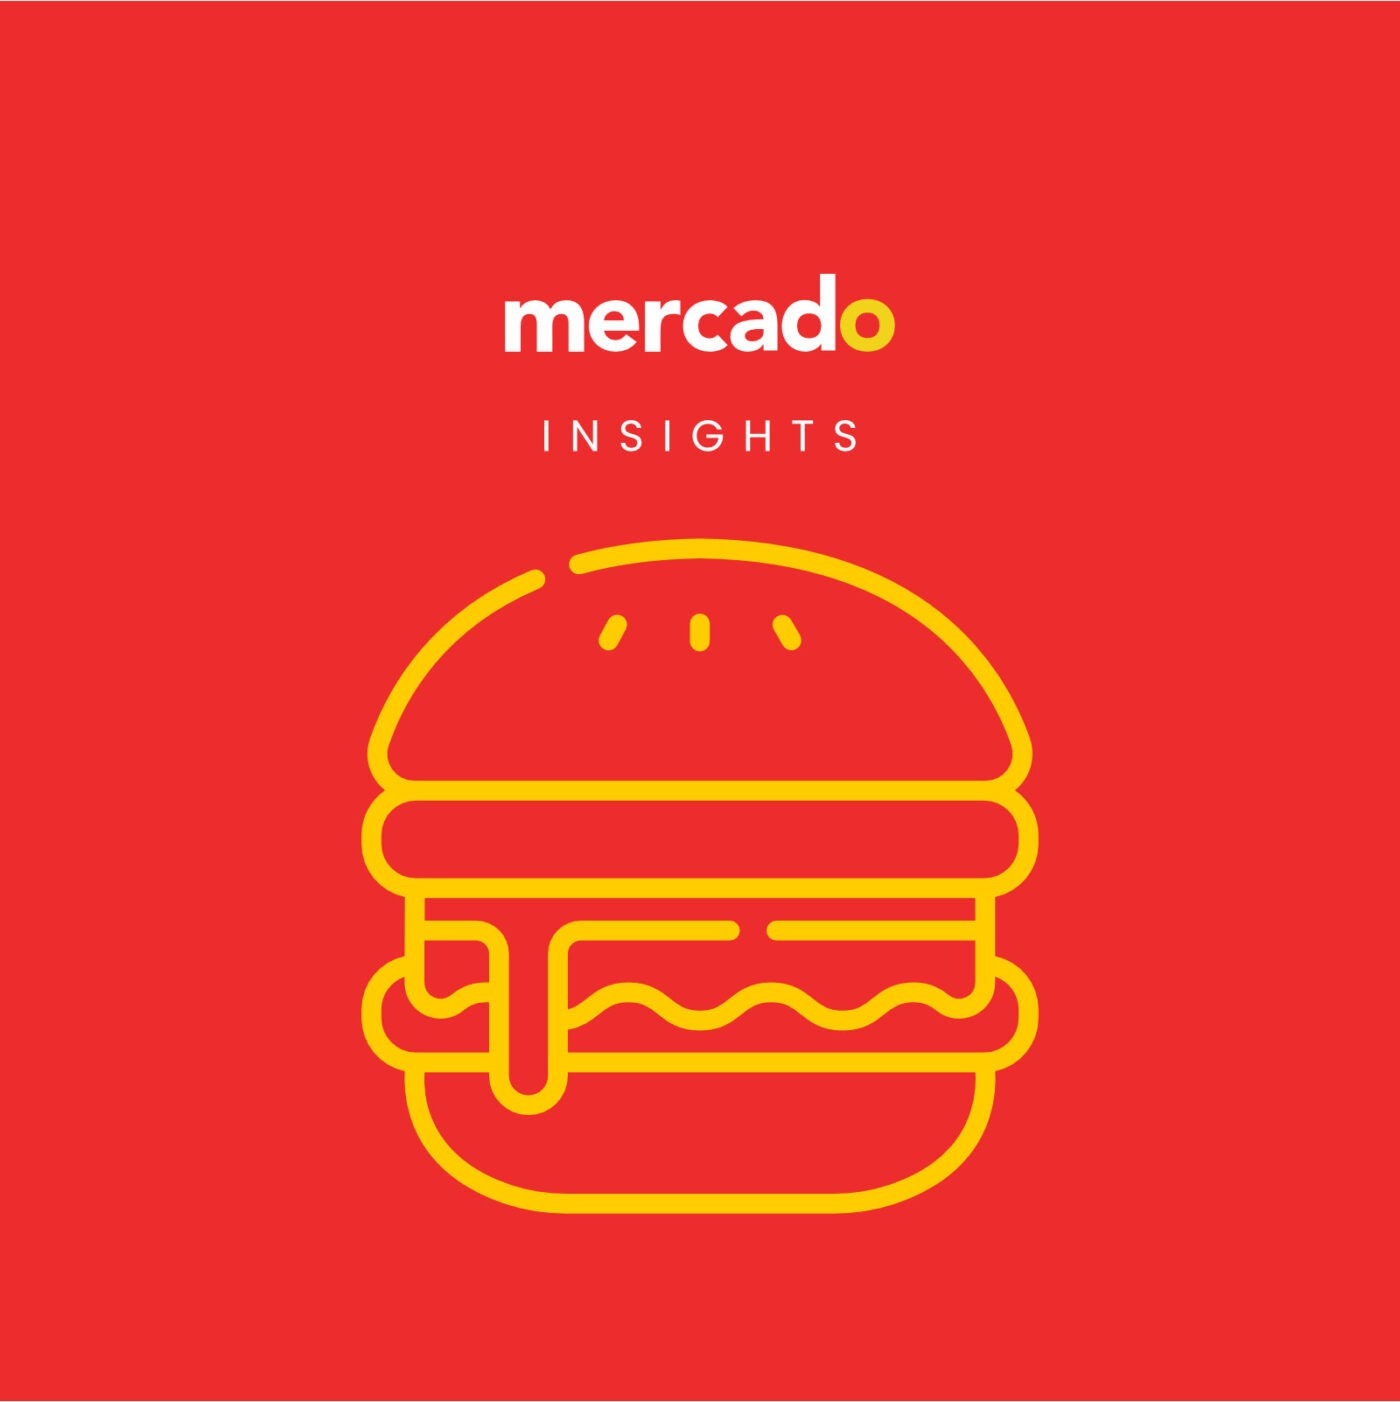 Mercado | Insights - The McDonald's Paradox